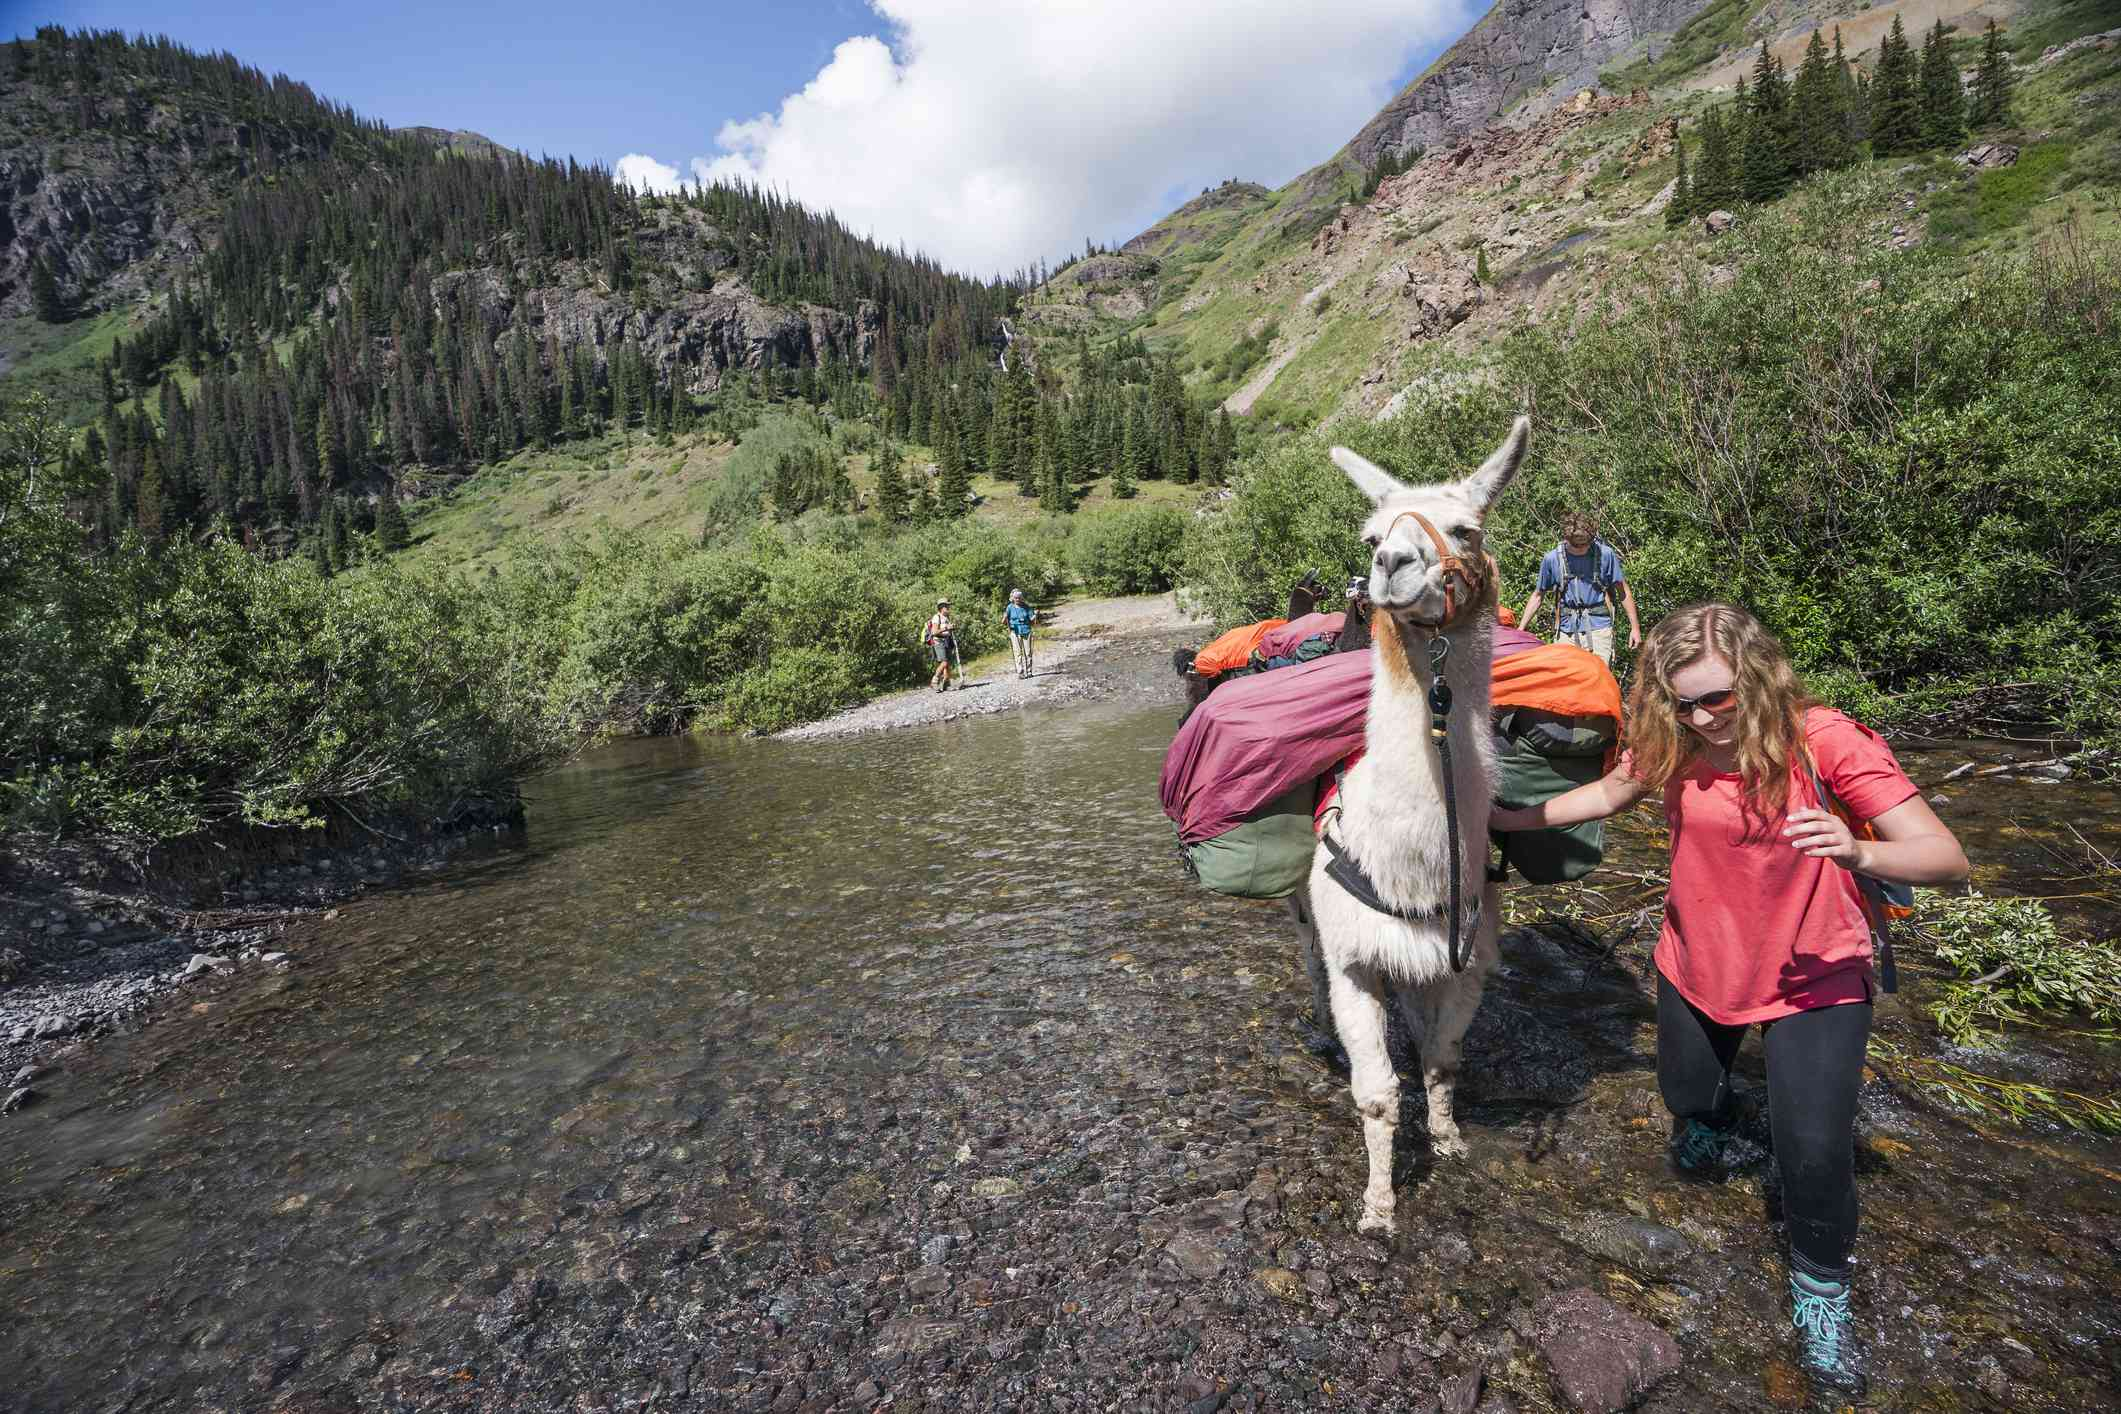 A woman crossing a stream with a llama carrying goods.